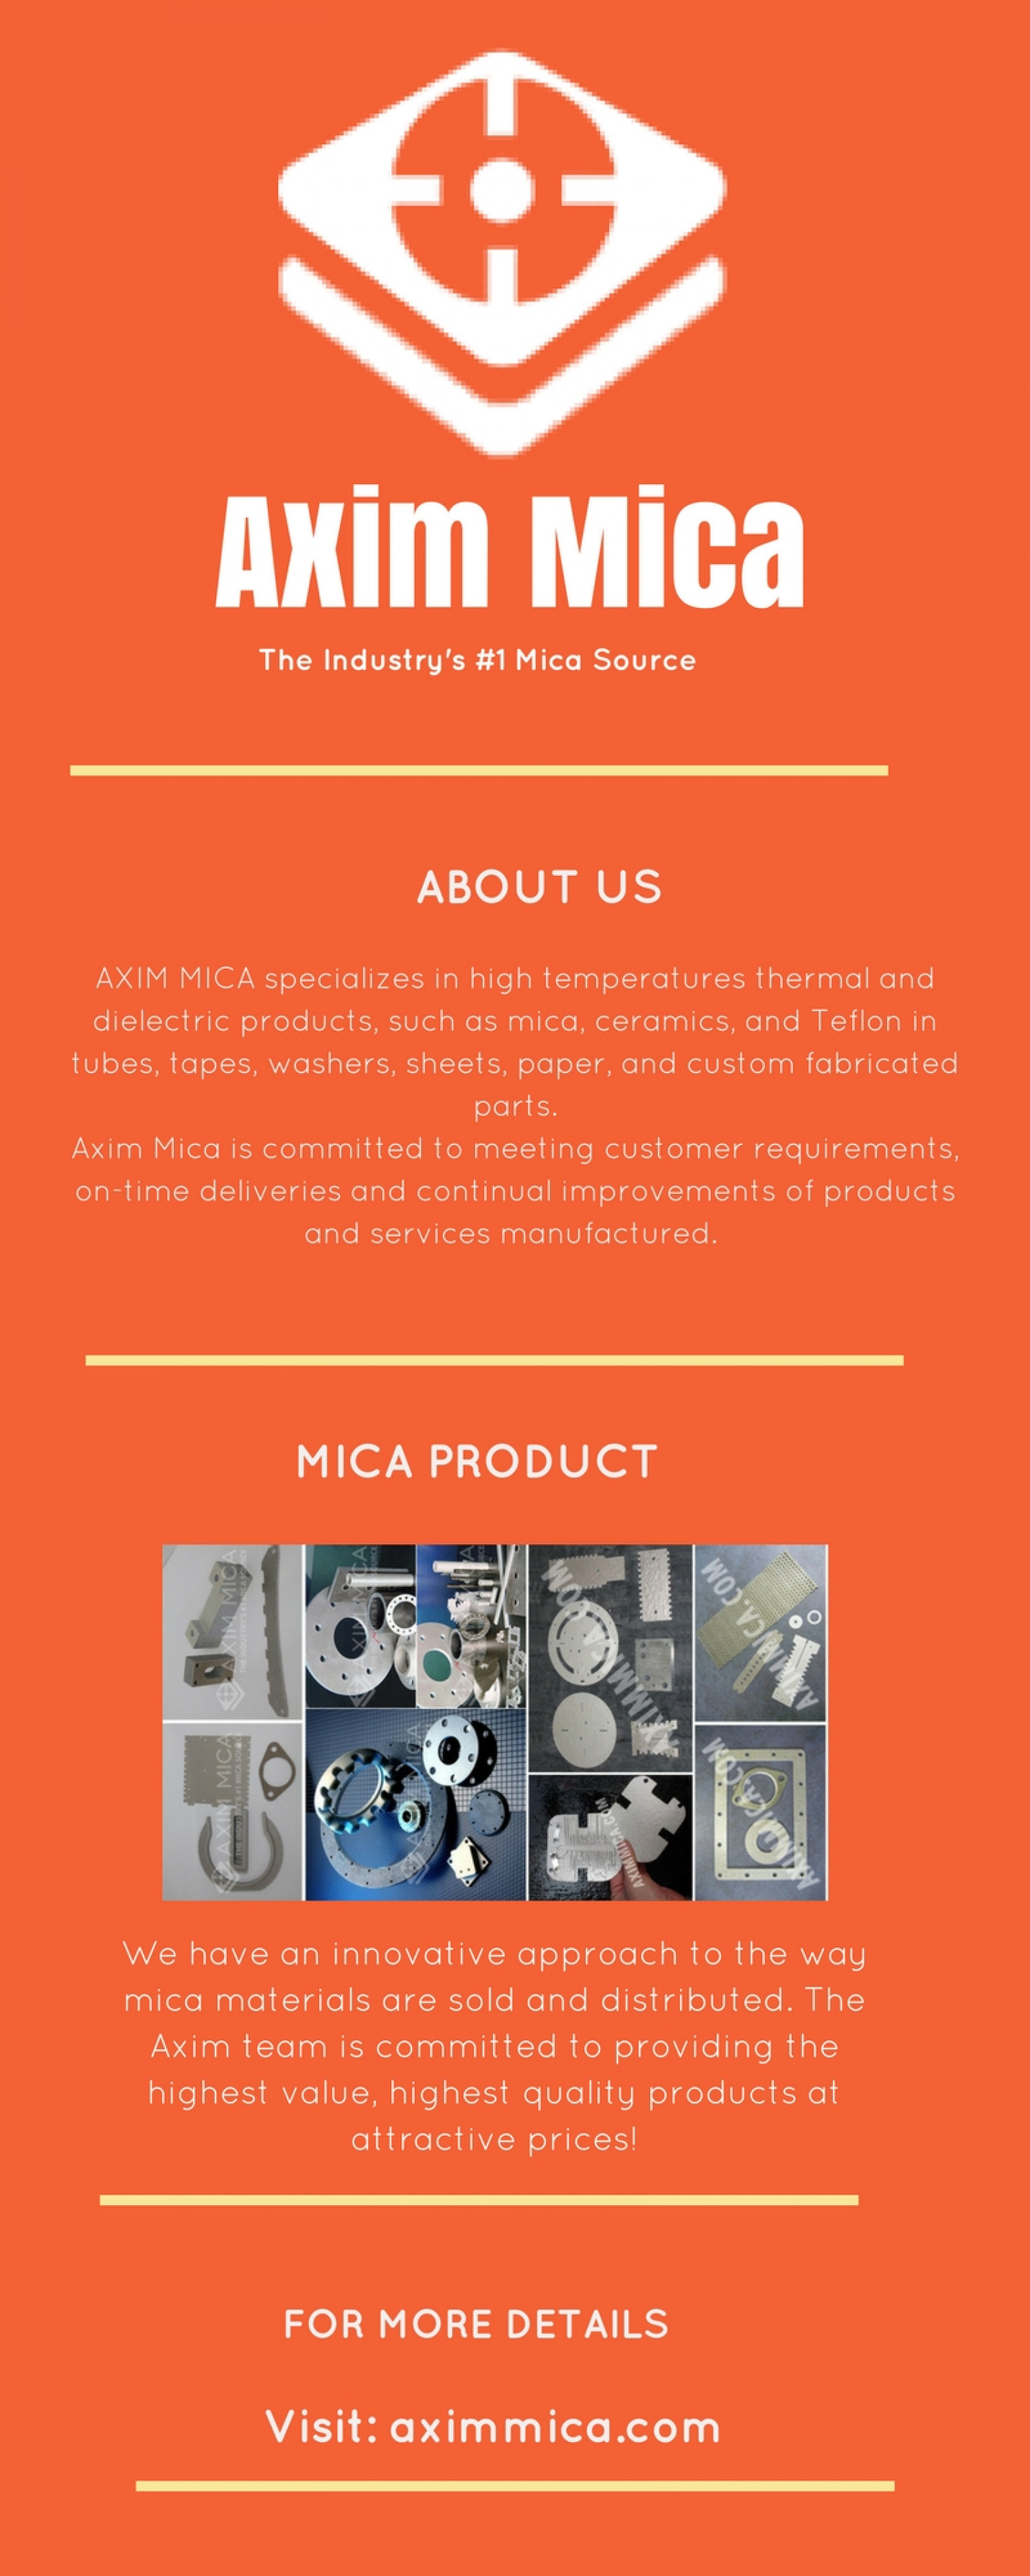 Axim Mica: Best Mica Material and Mica Product Supplier Infographic